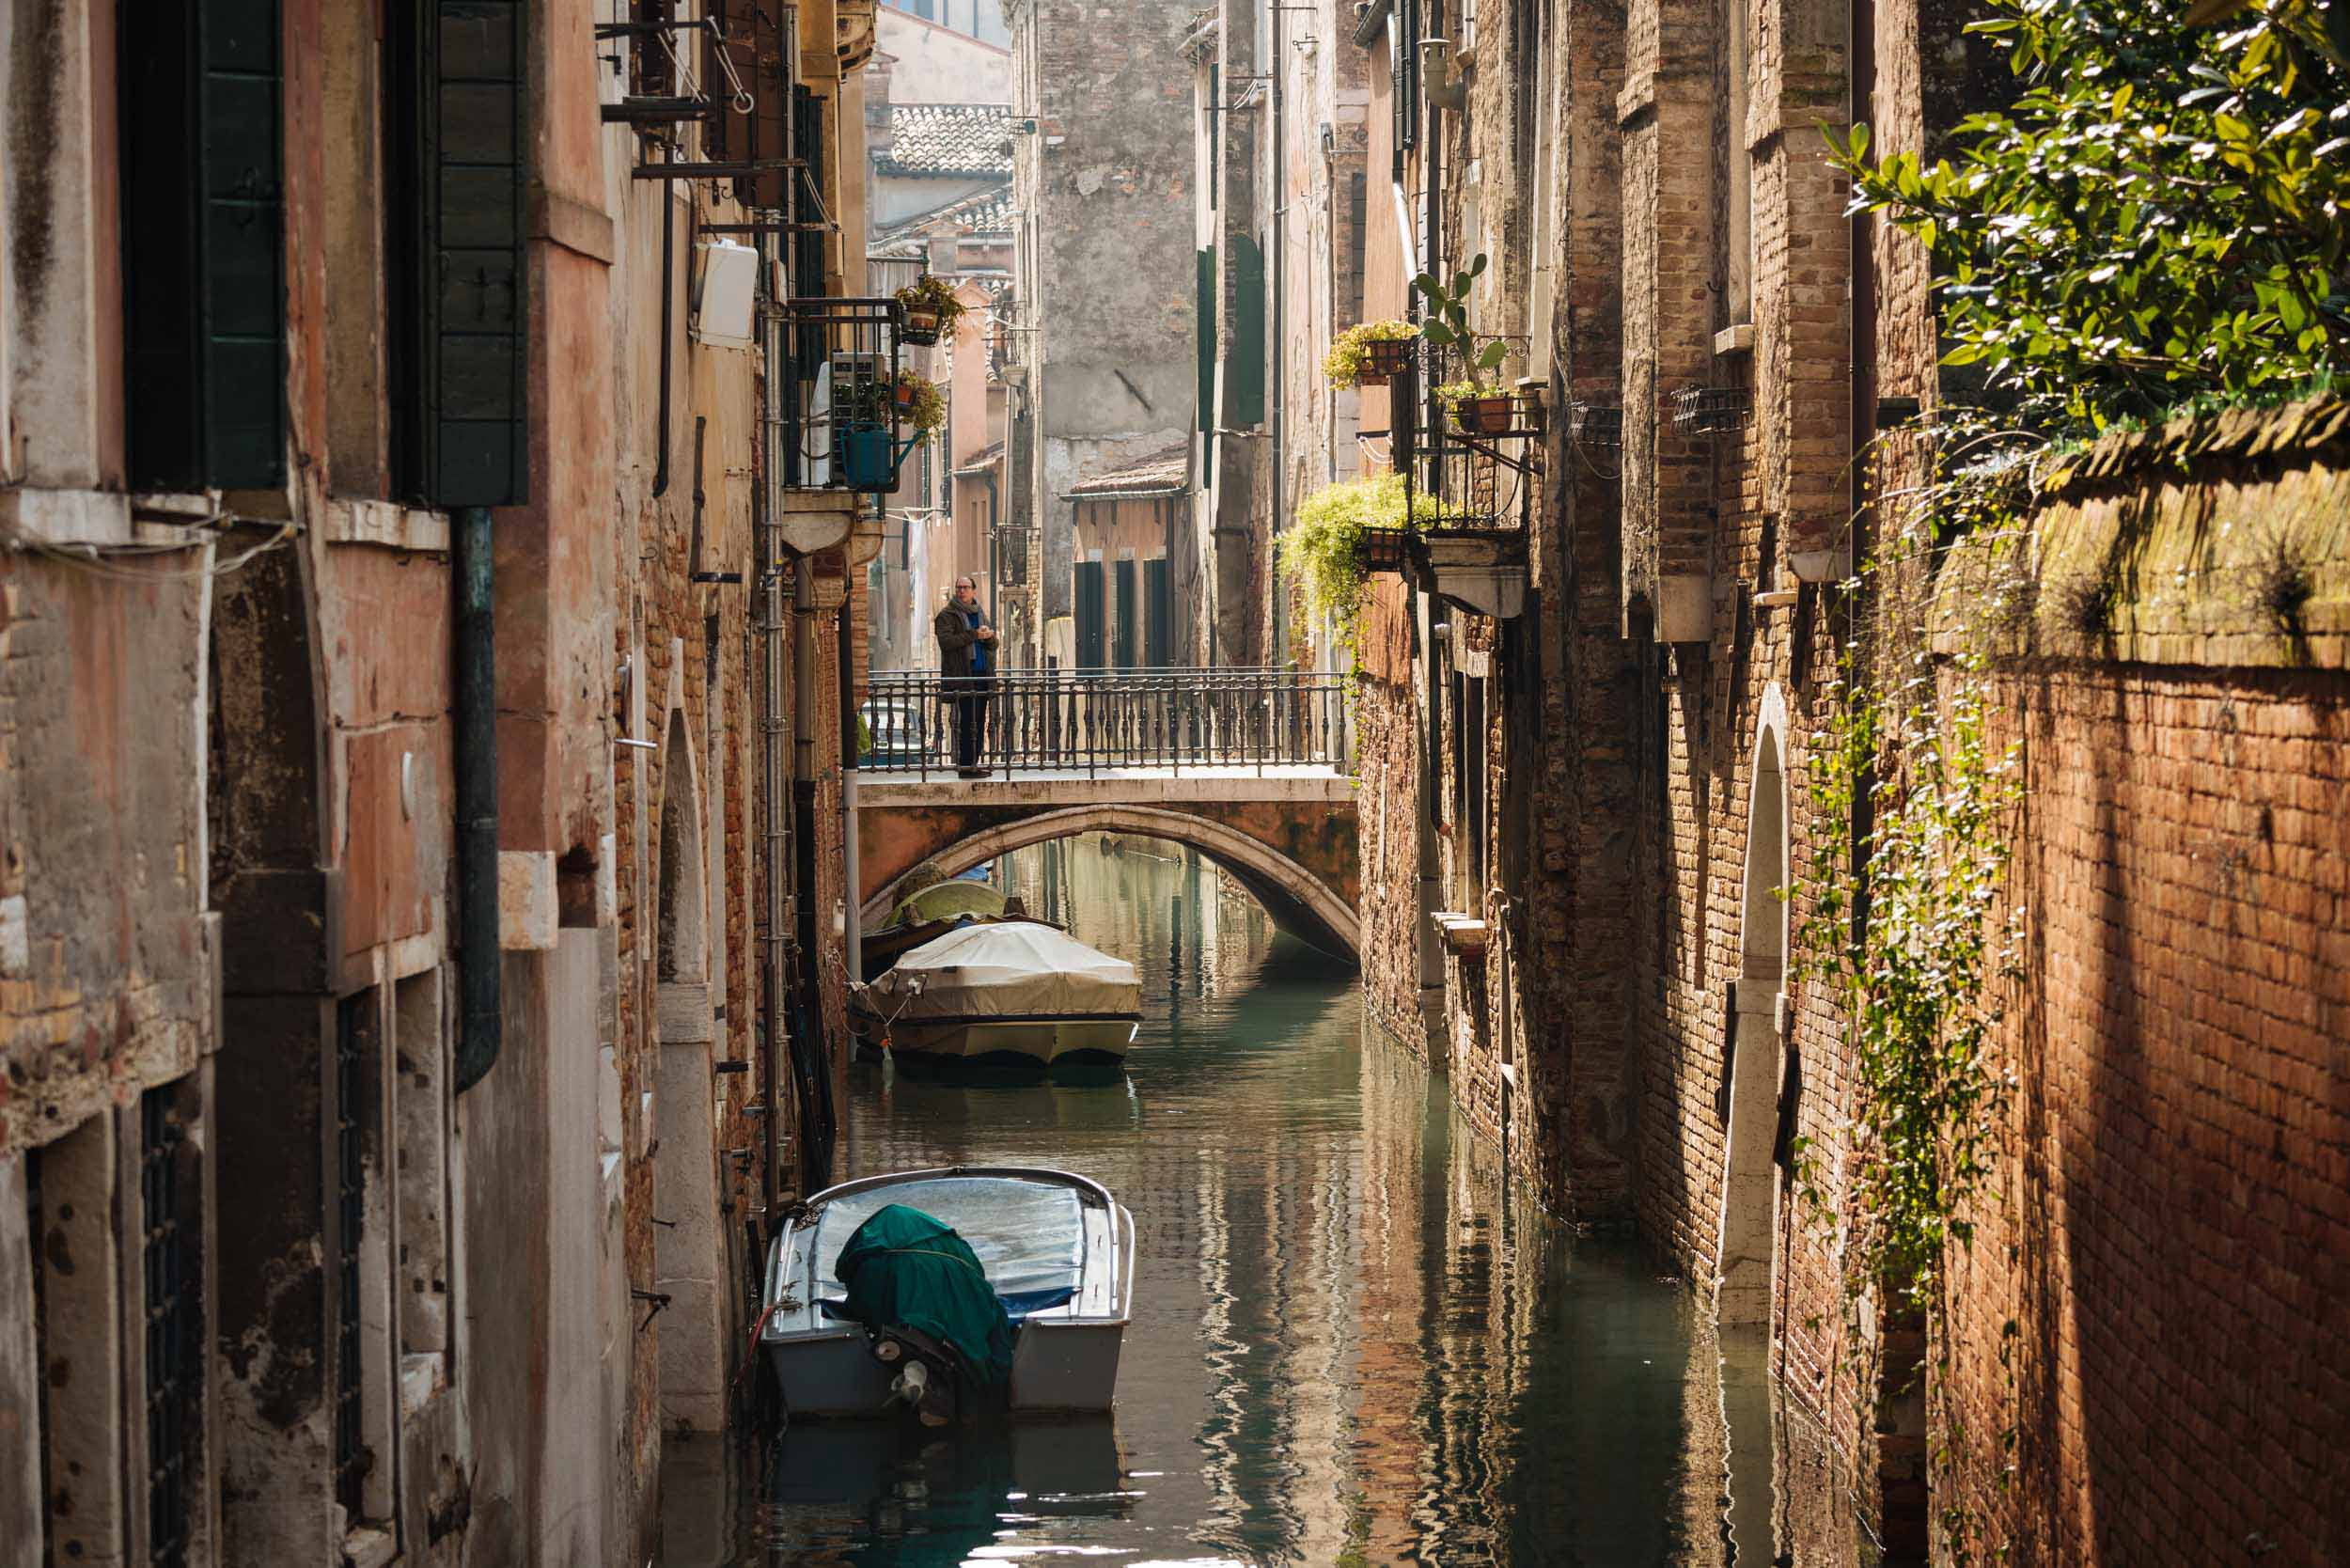 canal-venice-travel-tourist-destination-italy